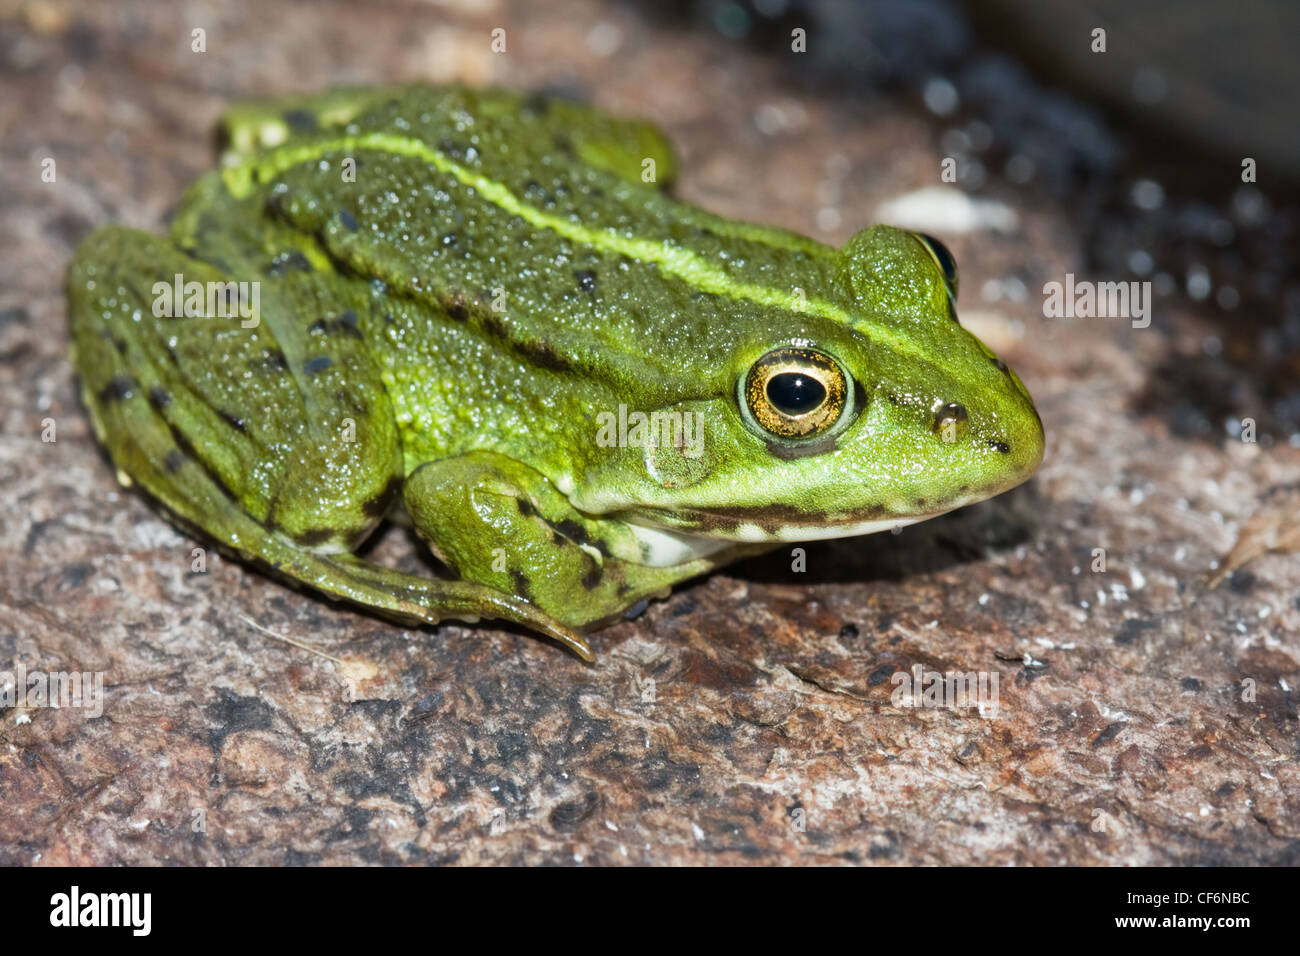 Close-up of a green marsh frog (Rana Ridibunda) on a tree trunk. - Stock Image